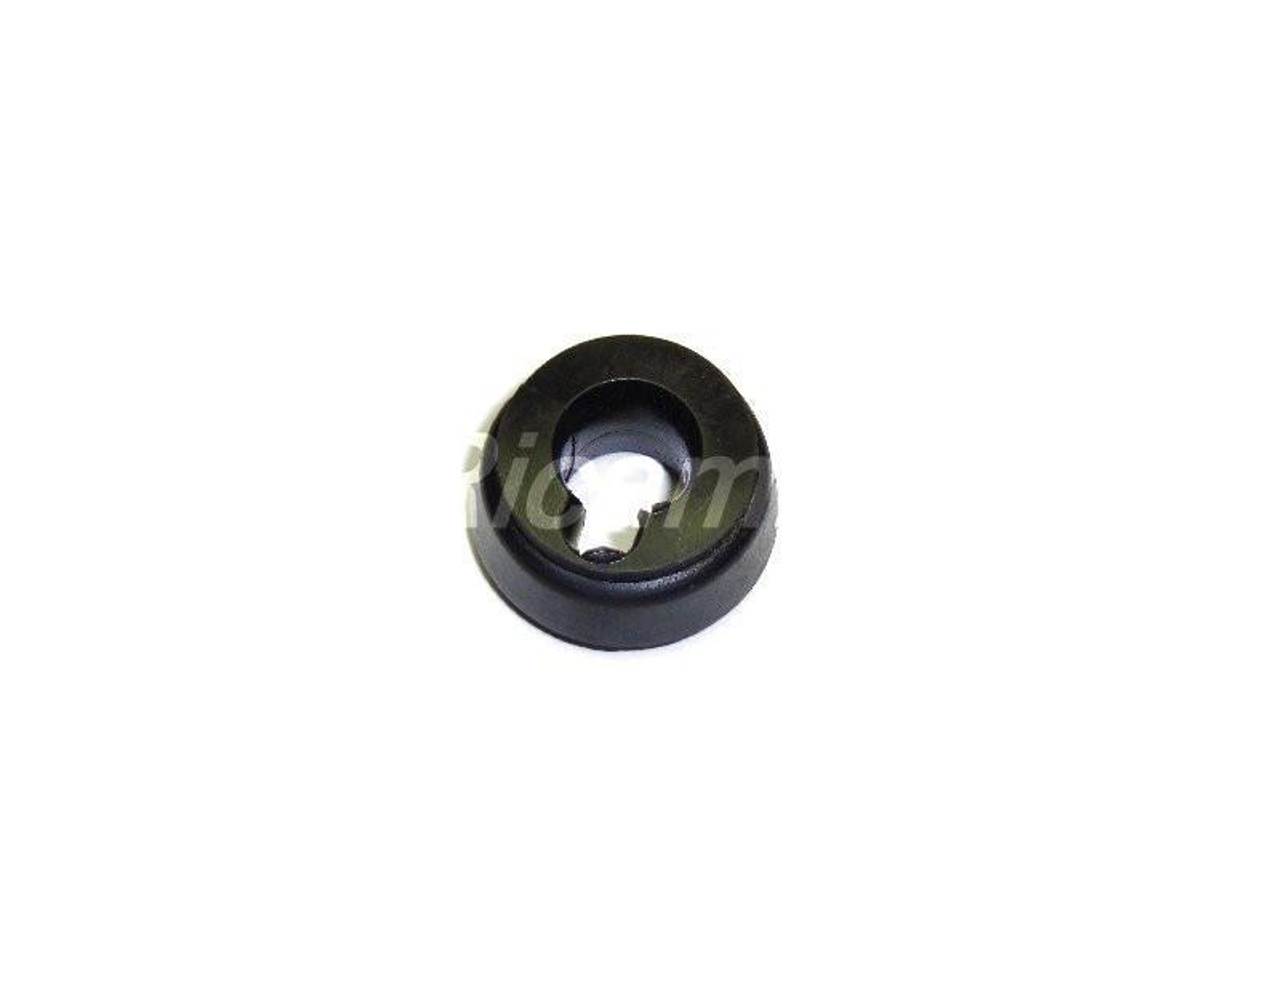 Under Rear Seat Battery Cable Grommet - 1975-85